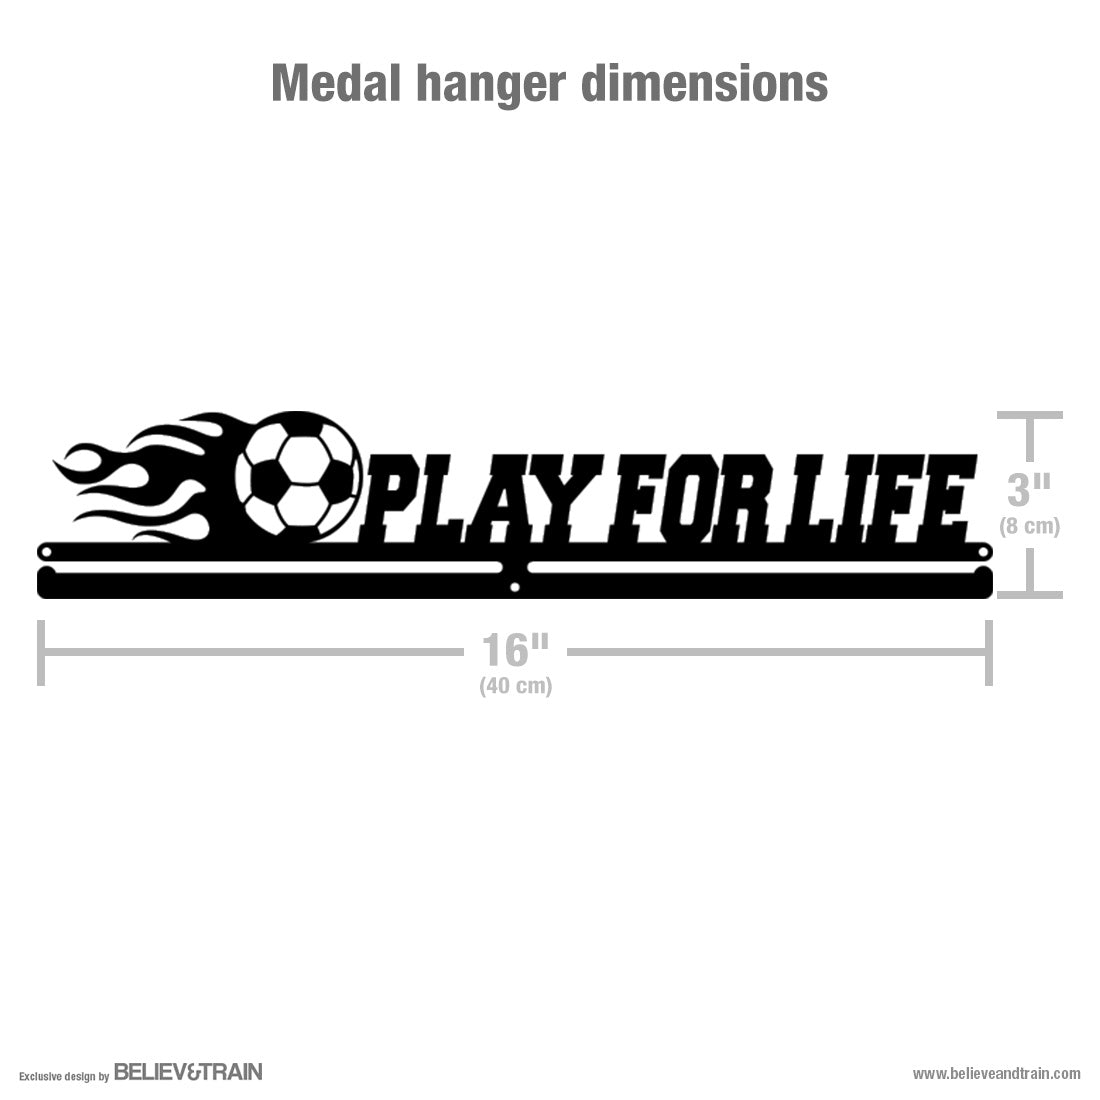 Play for Life - Soccer Medal Hanger